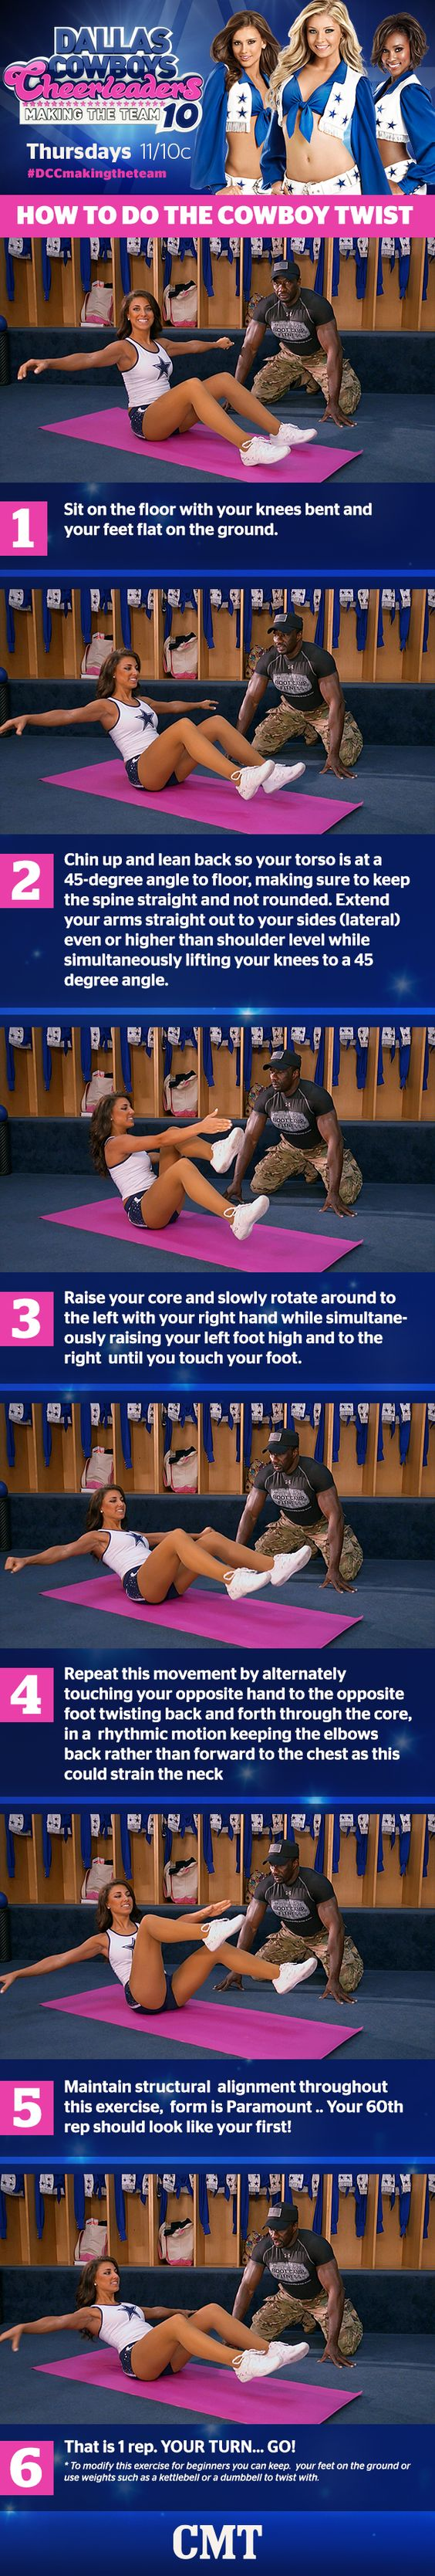 Dallas Cowboys Cheerleaders #MotivationMonday: Cowboy Twist. Great ab workout to strengthen the core! #DCCMakingTheTeam